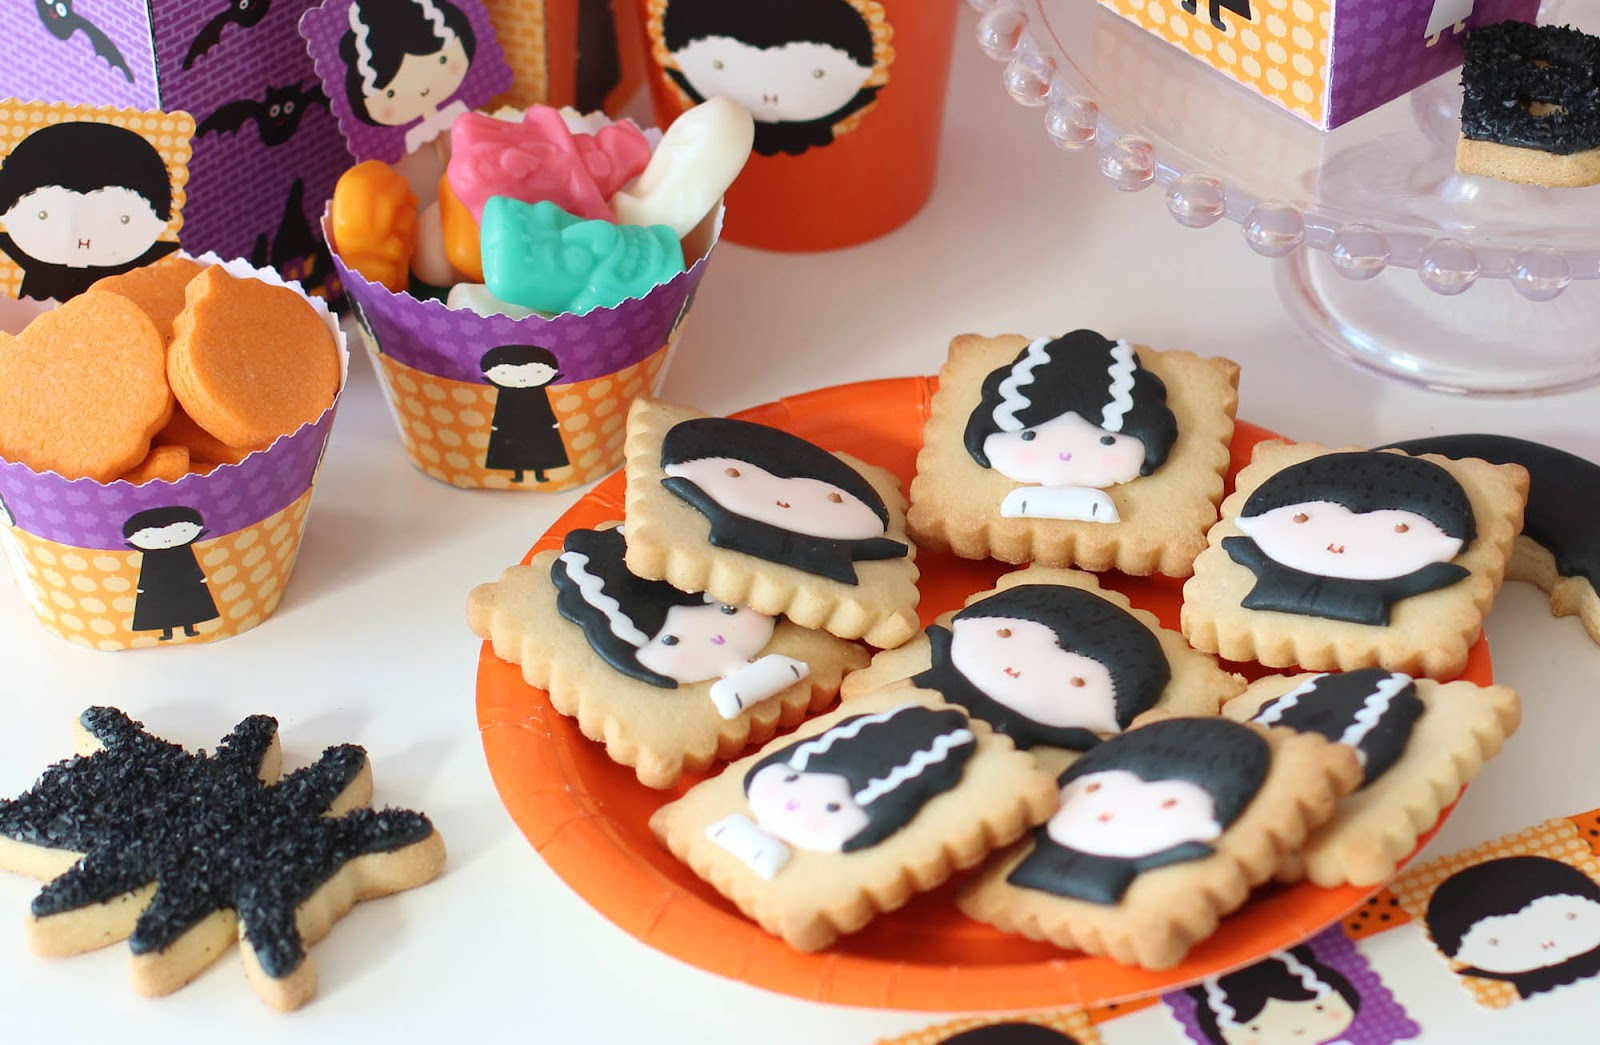 Cursos Galletas Decoradas Madrid Galletas Decoradas Halloween Quotnaif Quot Postreadicción